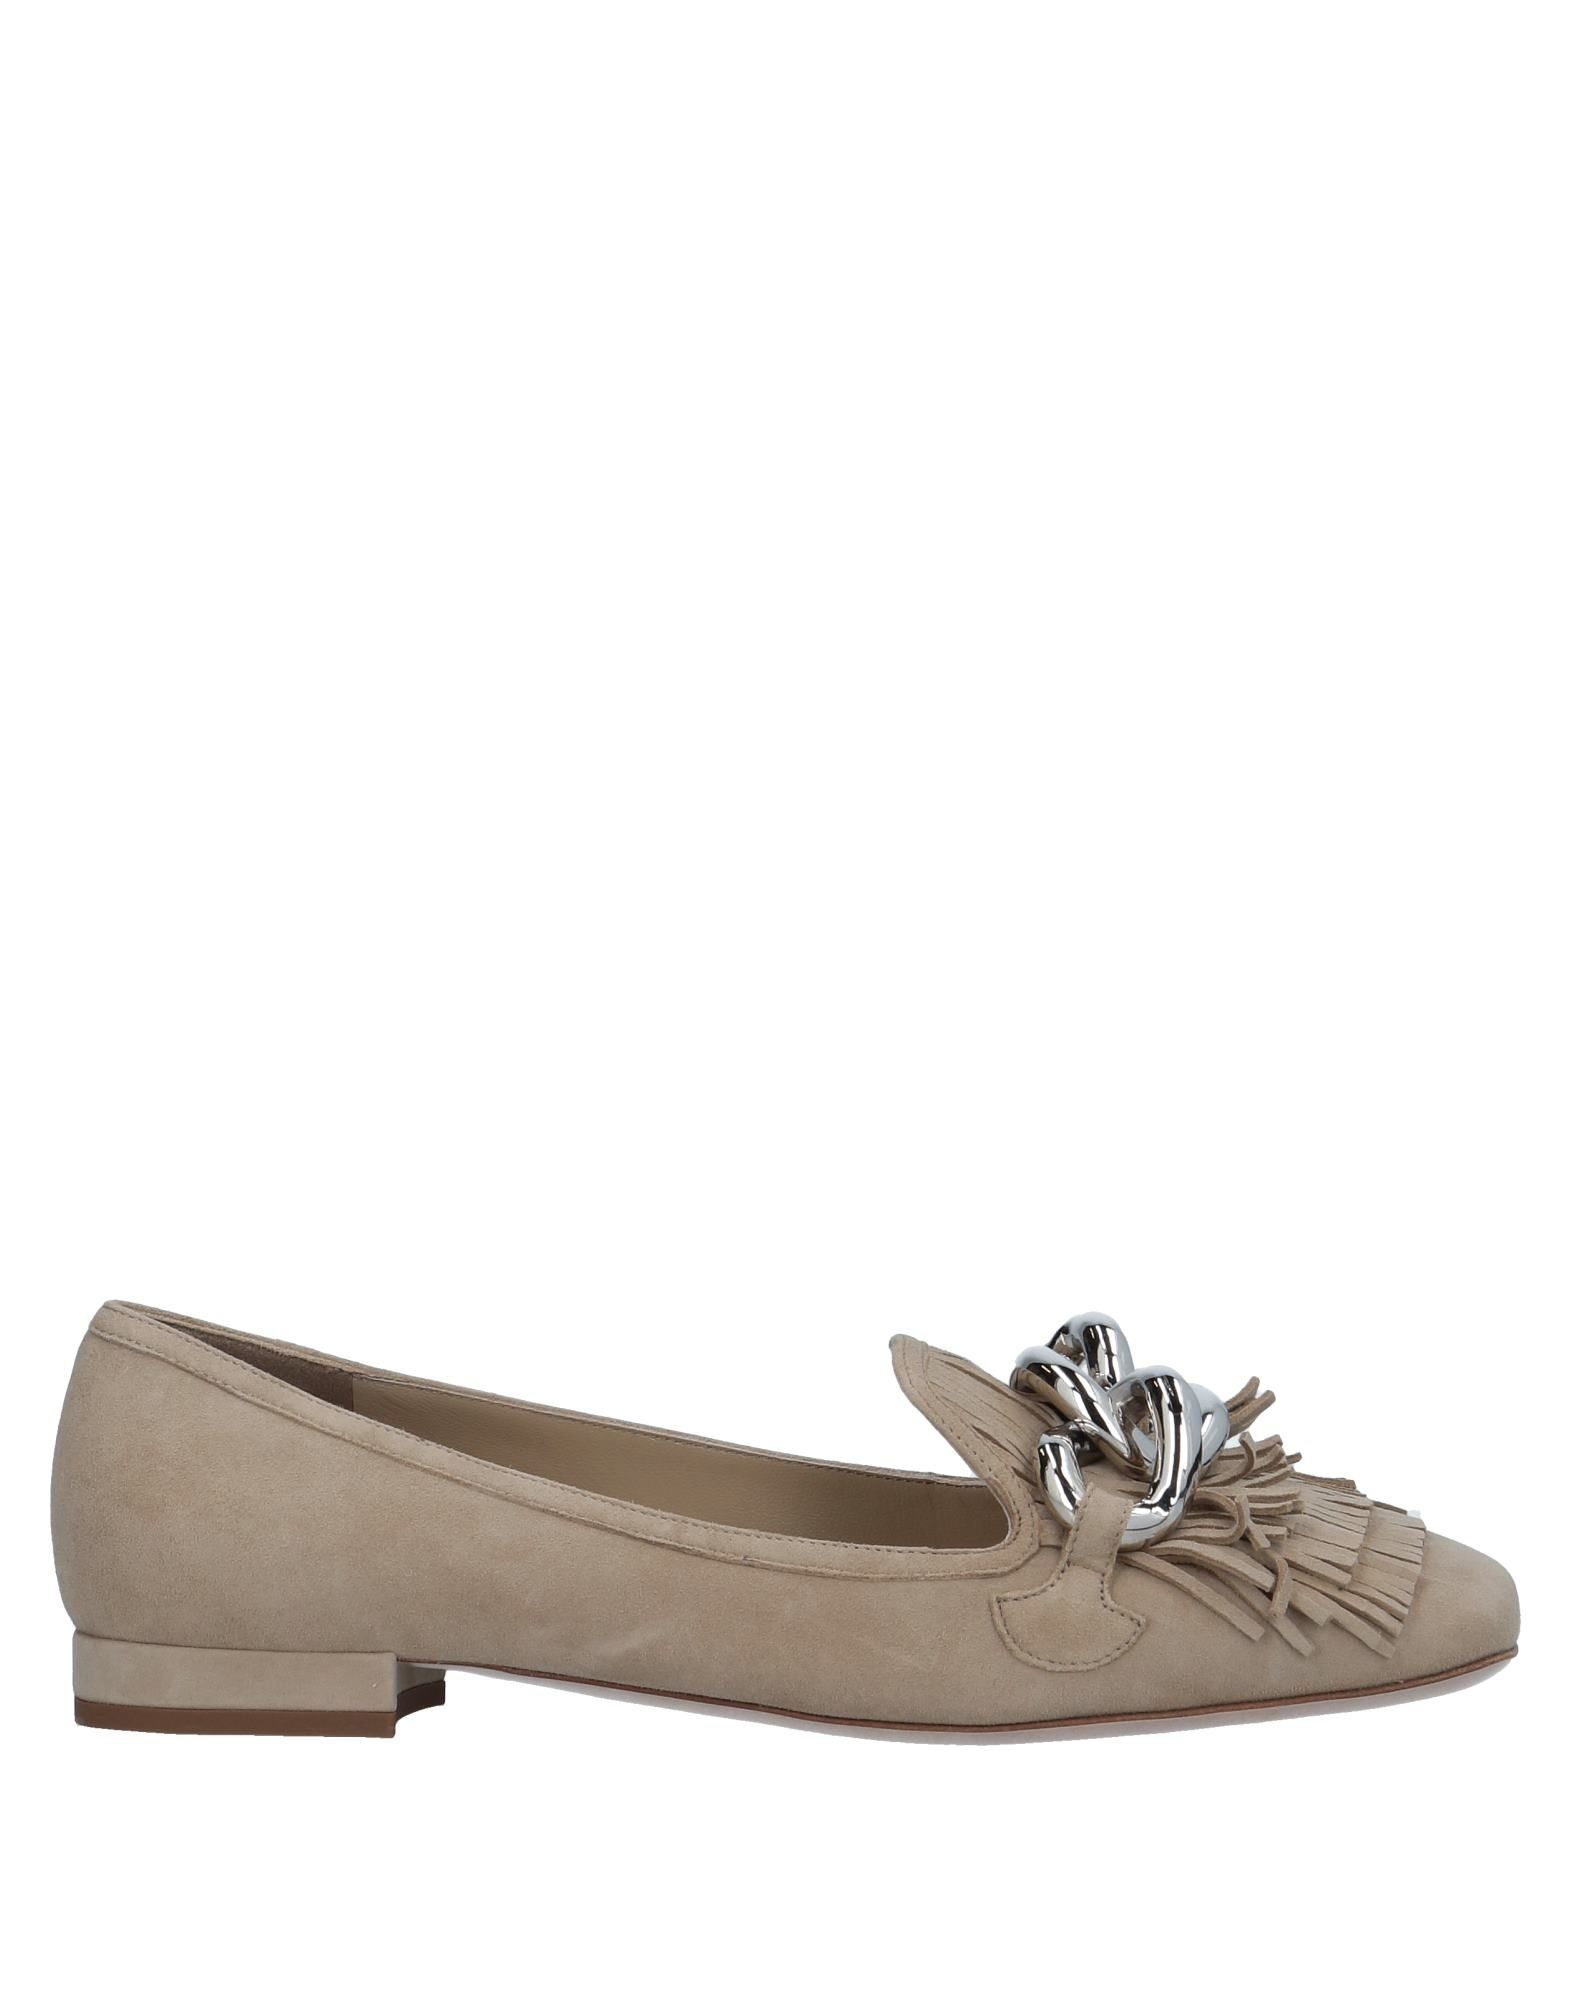 Miu Miu Donna scarpe, designer footwear on sale   YOOX